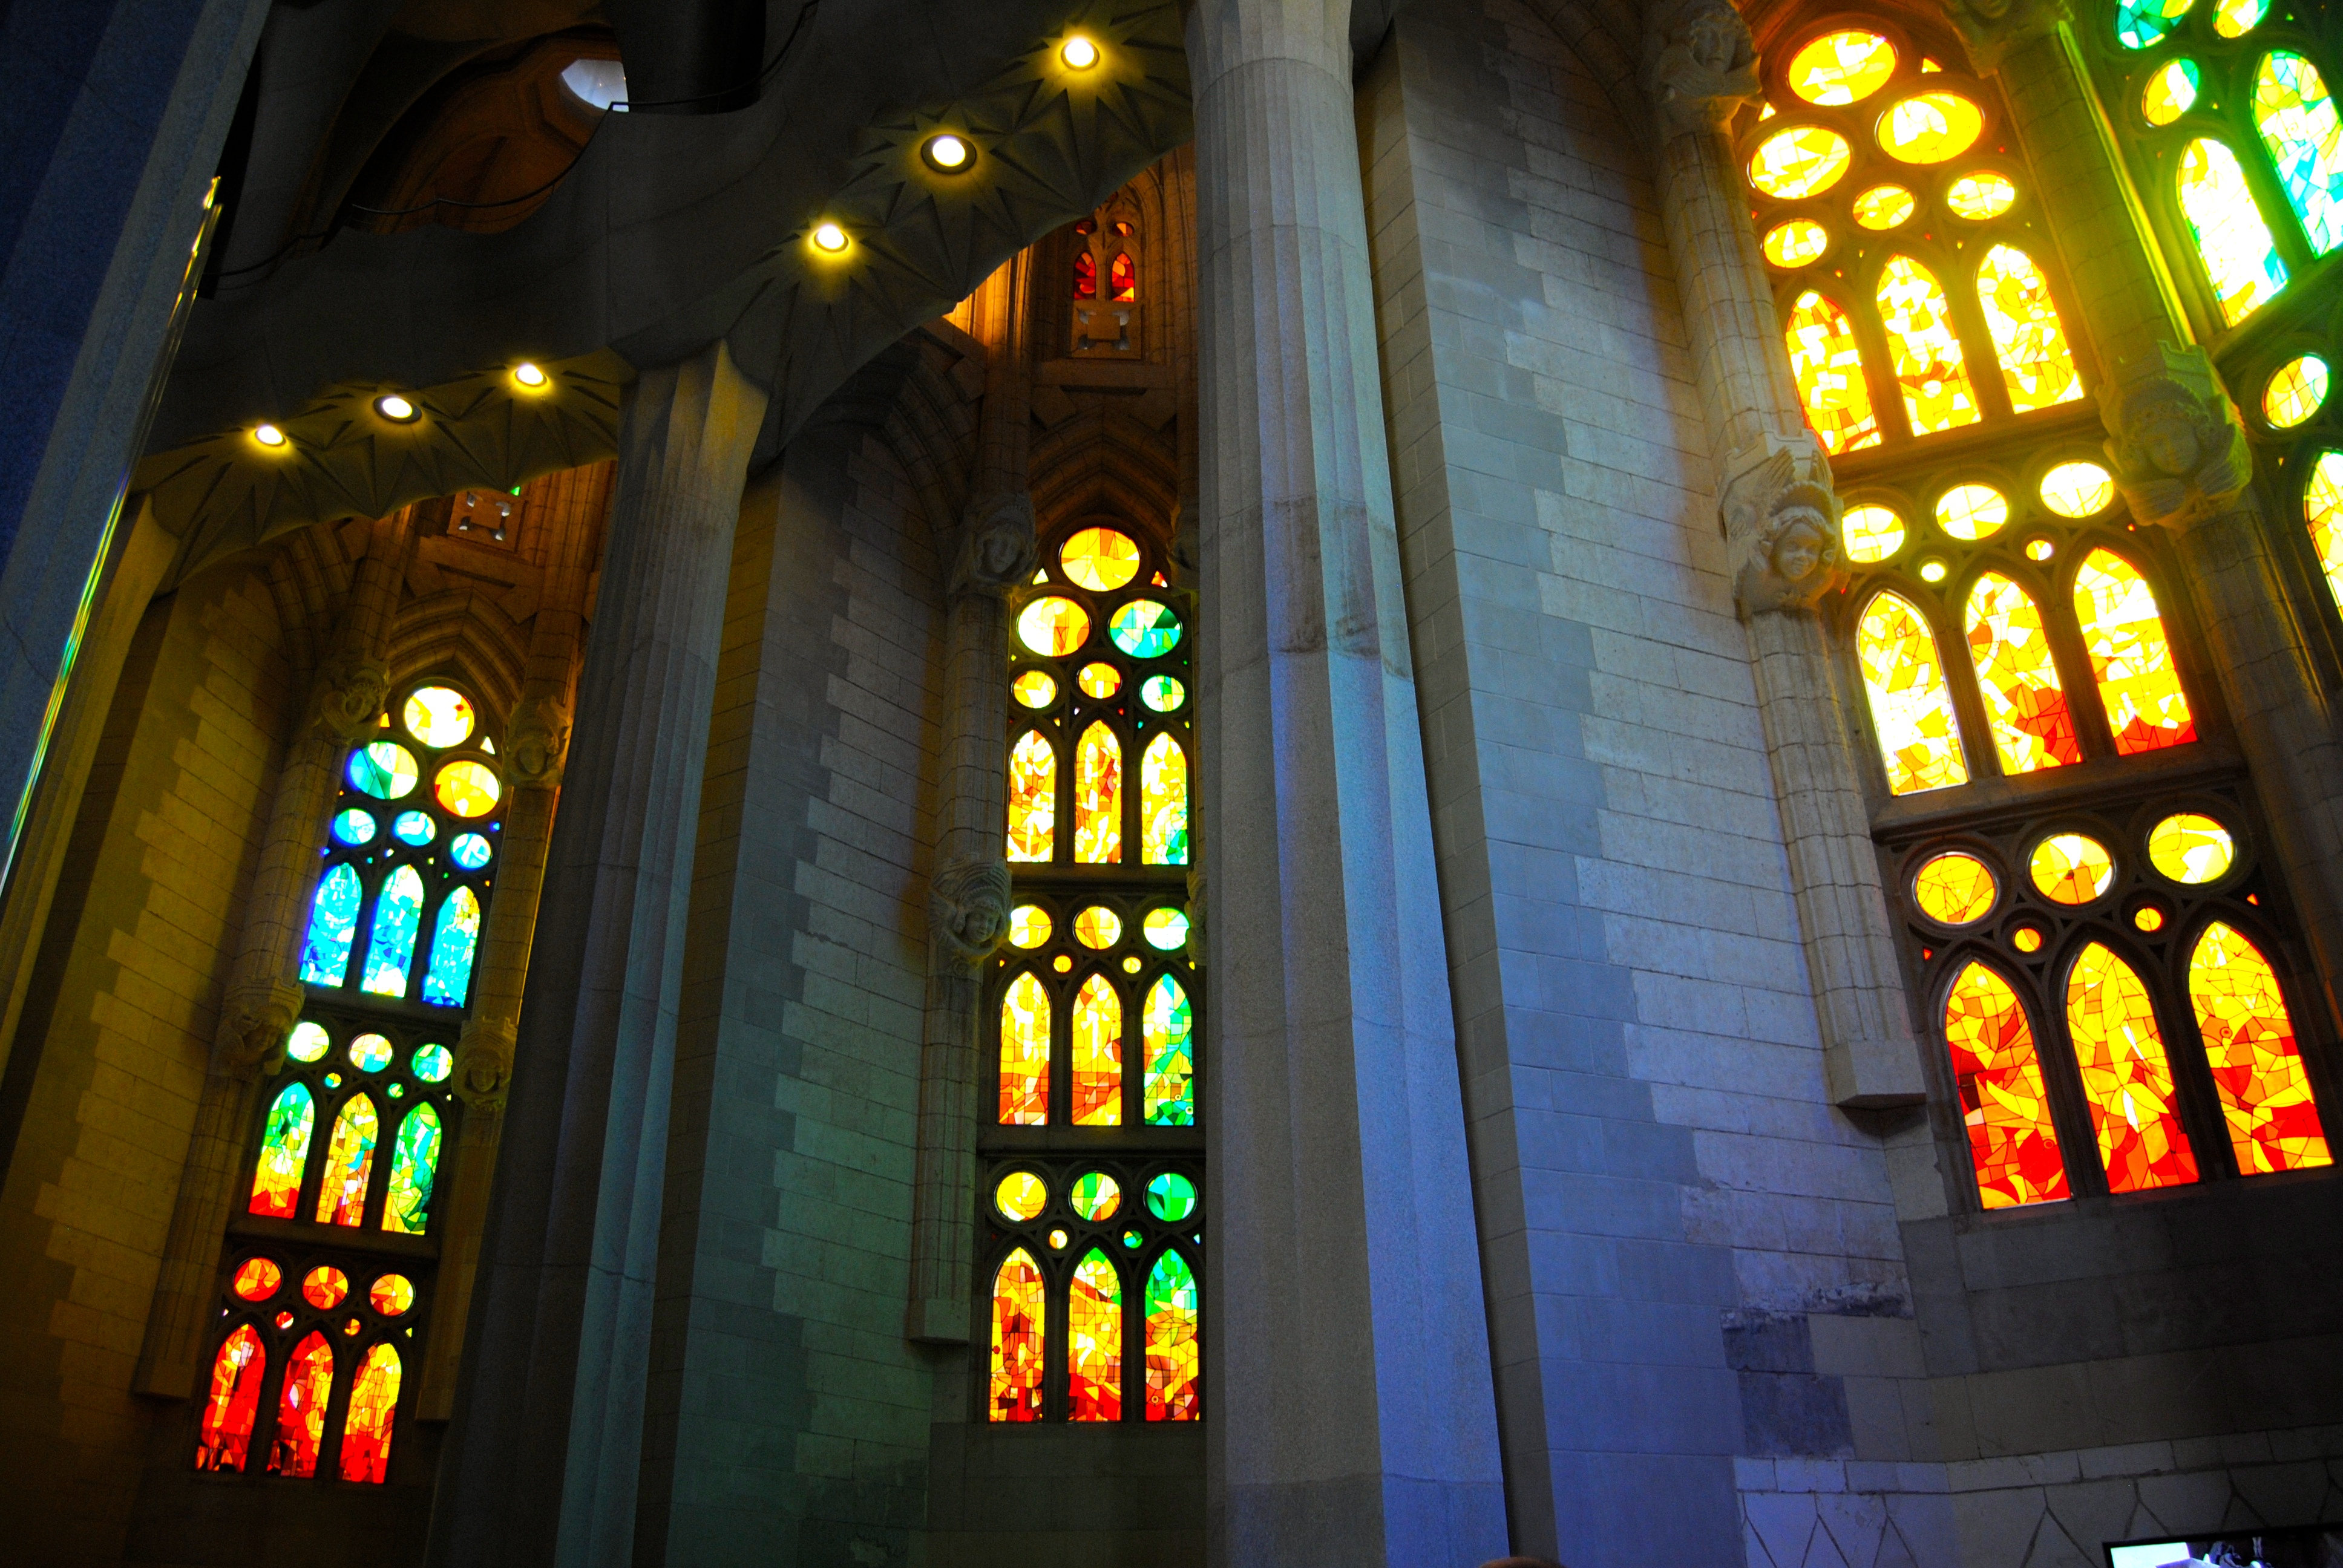 Stained glass windows on the inside of the church.